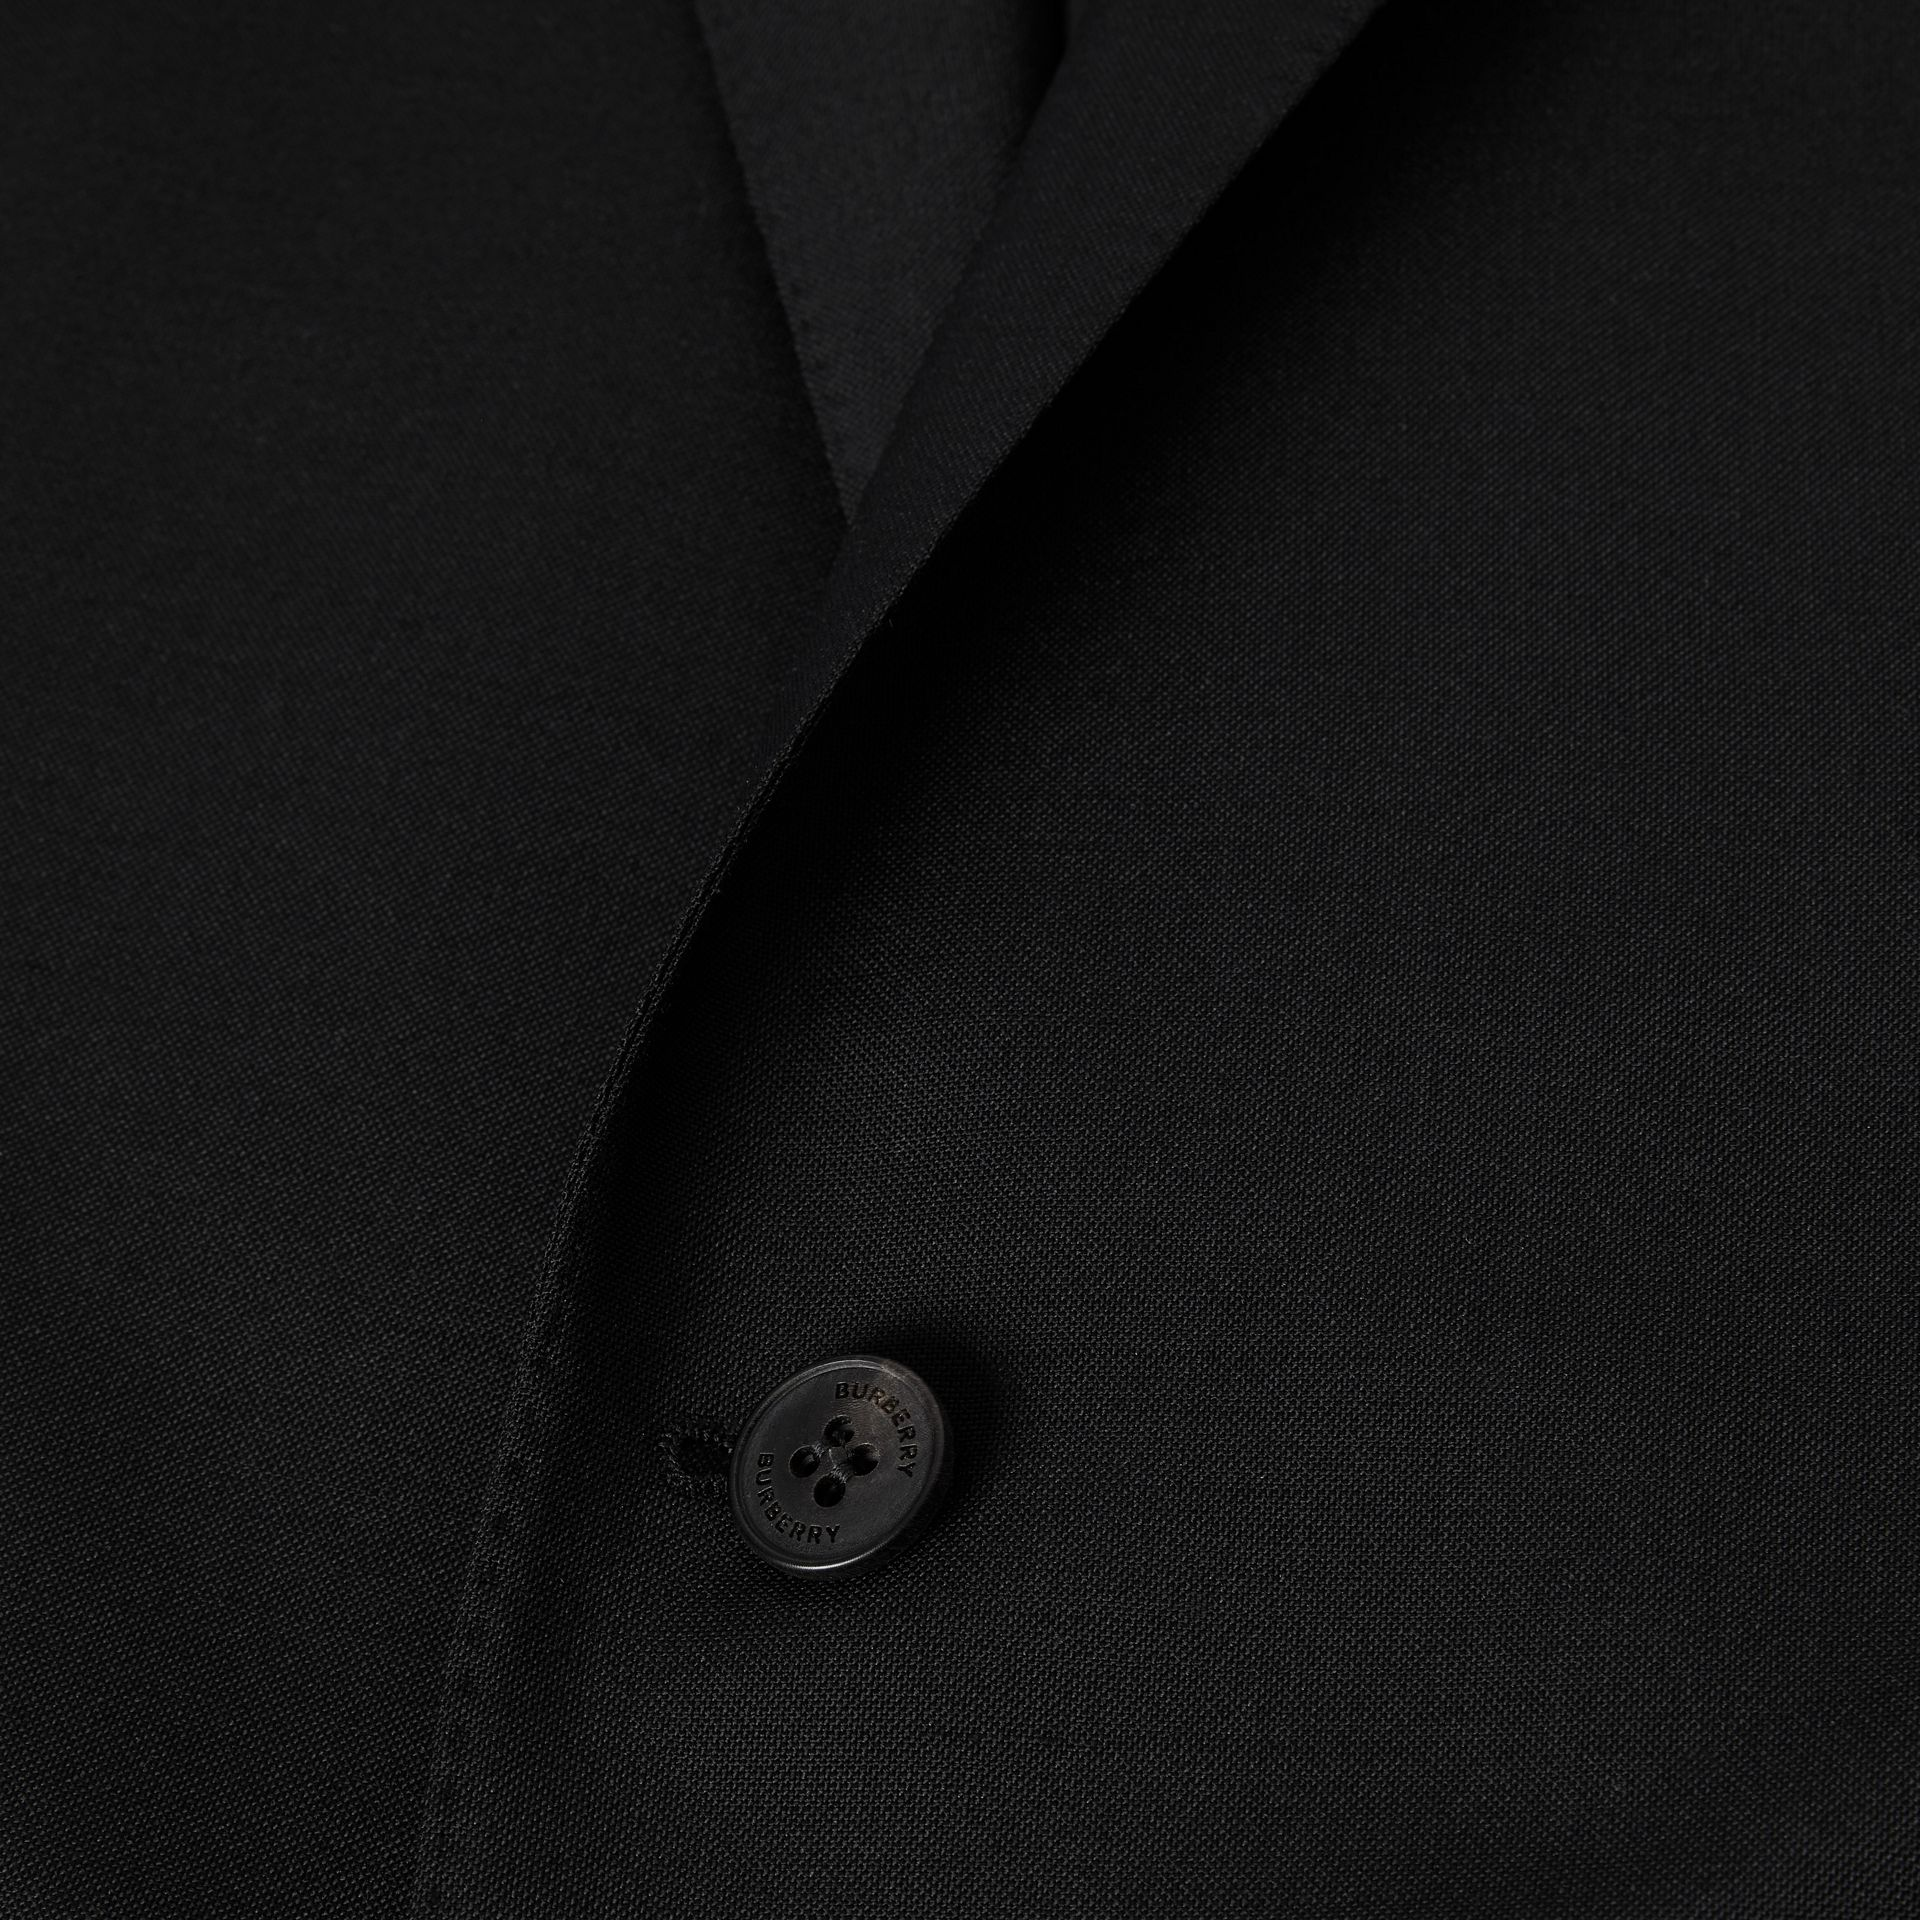 Slim Fit Wool Mohair Suit in Black - Men | Burberry Hong Kong S.A.R - gallery image 8